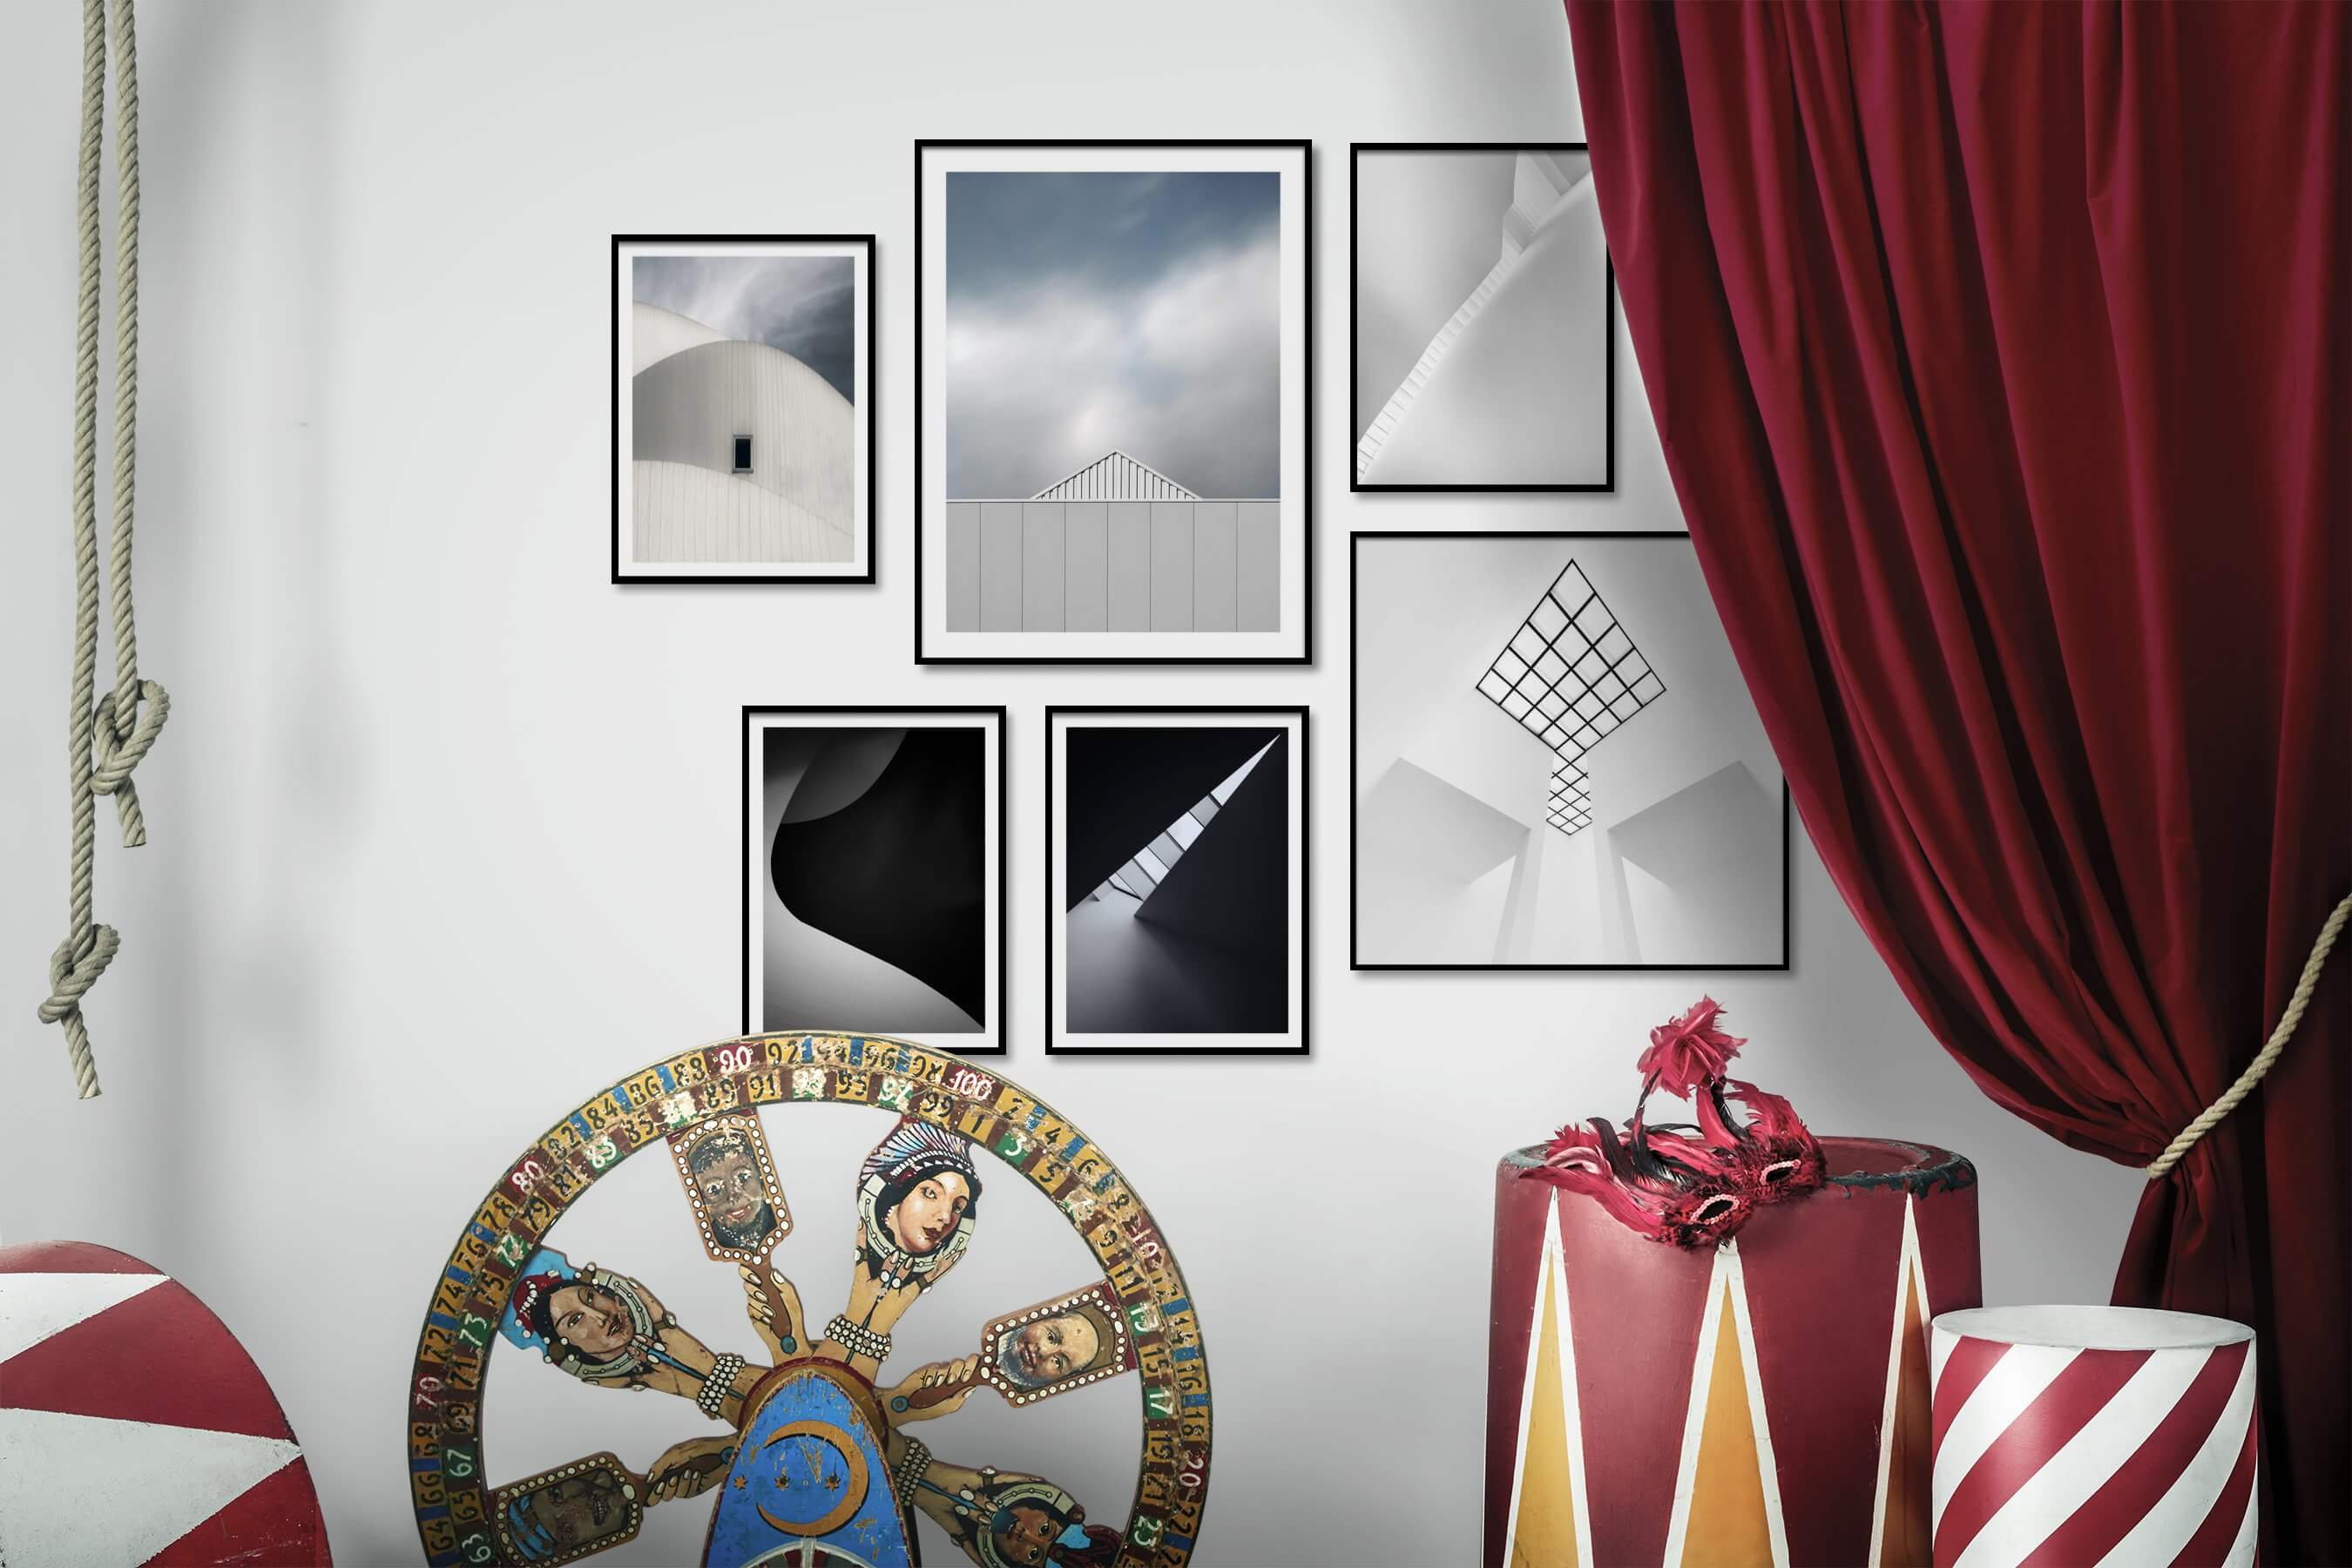 Gallery wall idea with six framed pictures arranged on a wall depicting For the Minimalist, Black & White, and Bright Tones